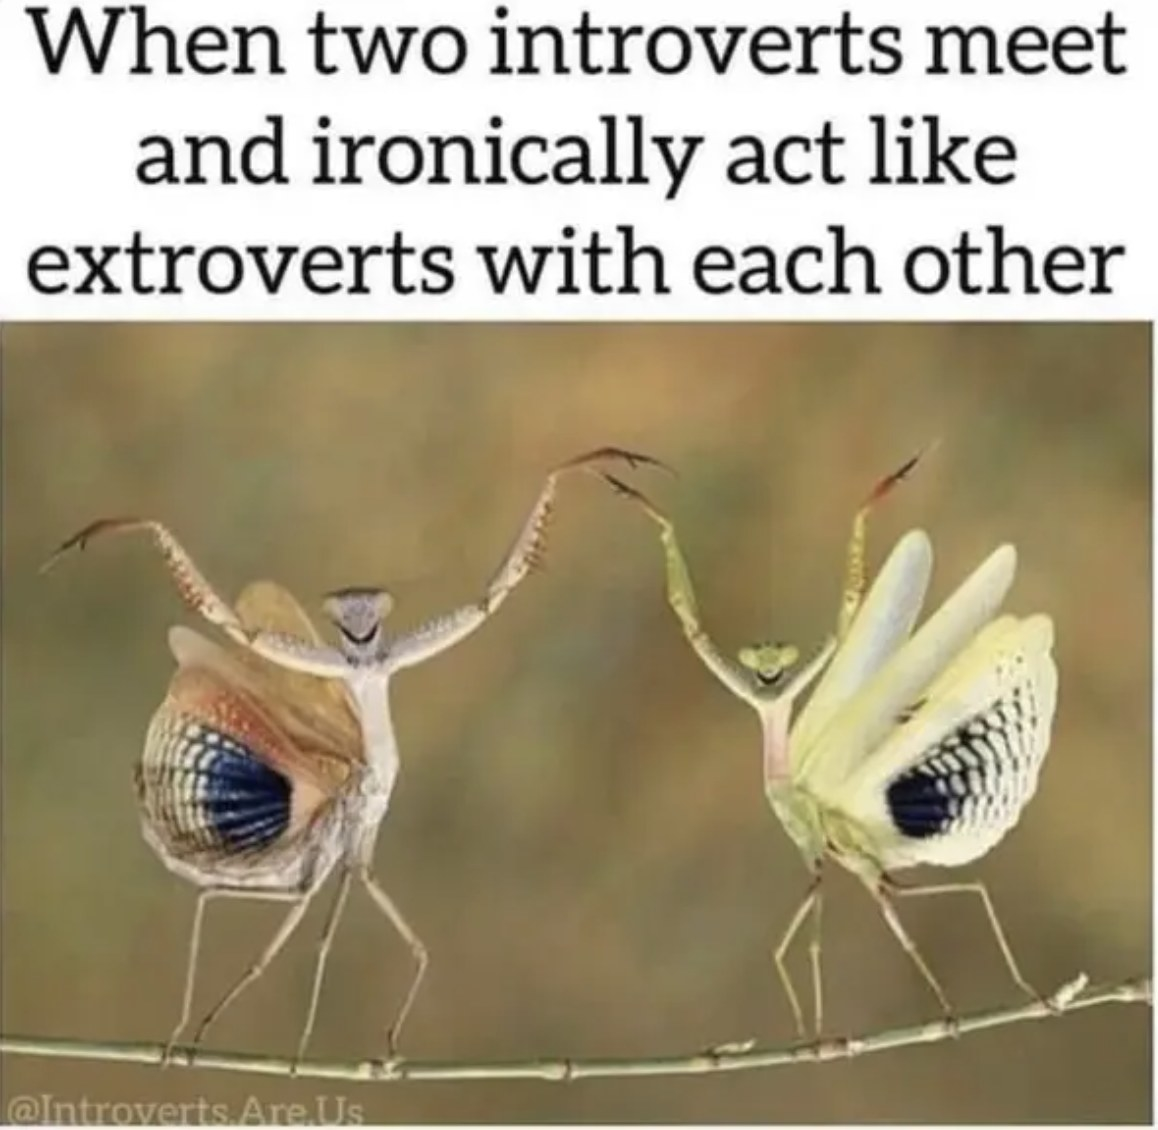 """Two colourful bugs on a stick under the words """"When two introverts meet and ironically act like extroverts with each other""""."""